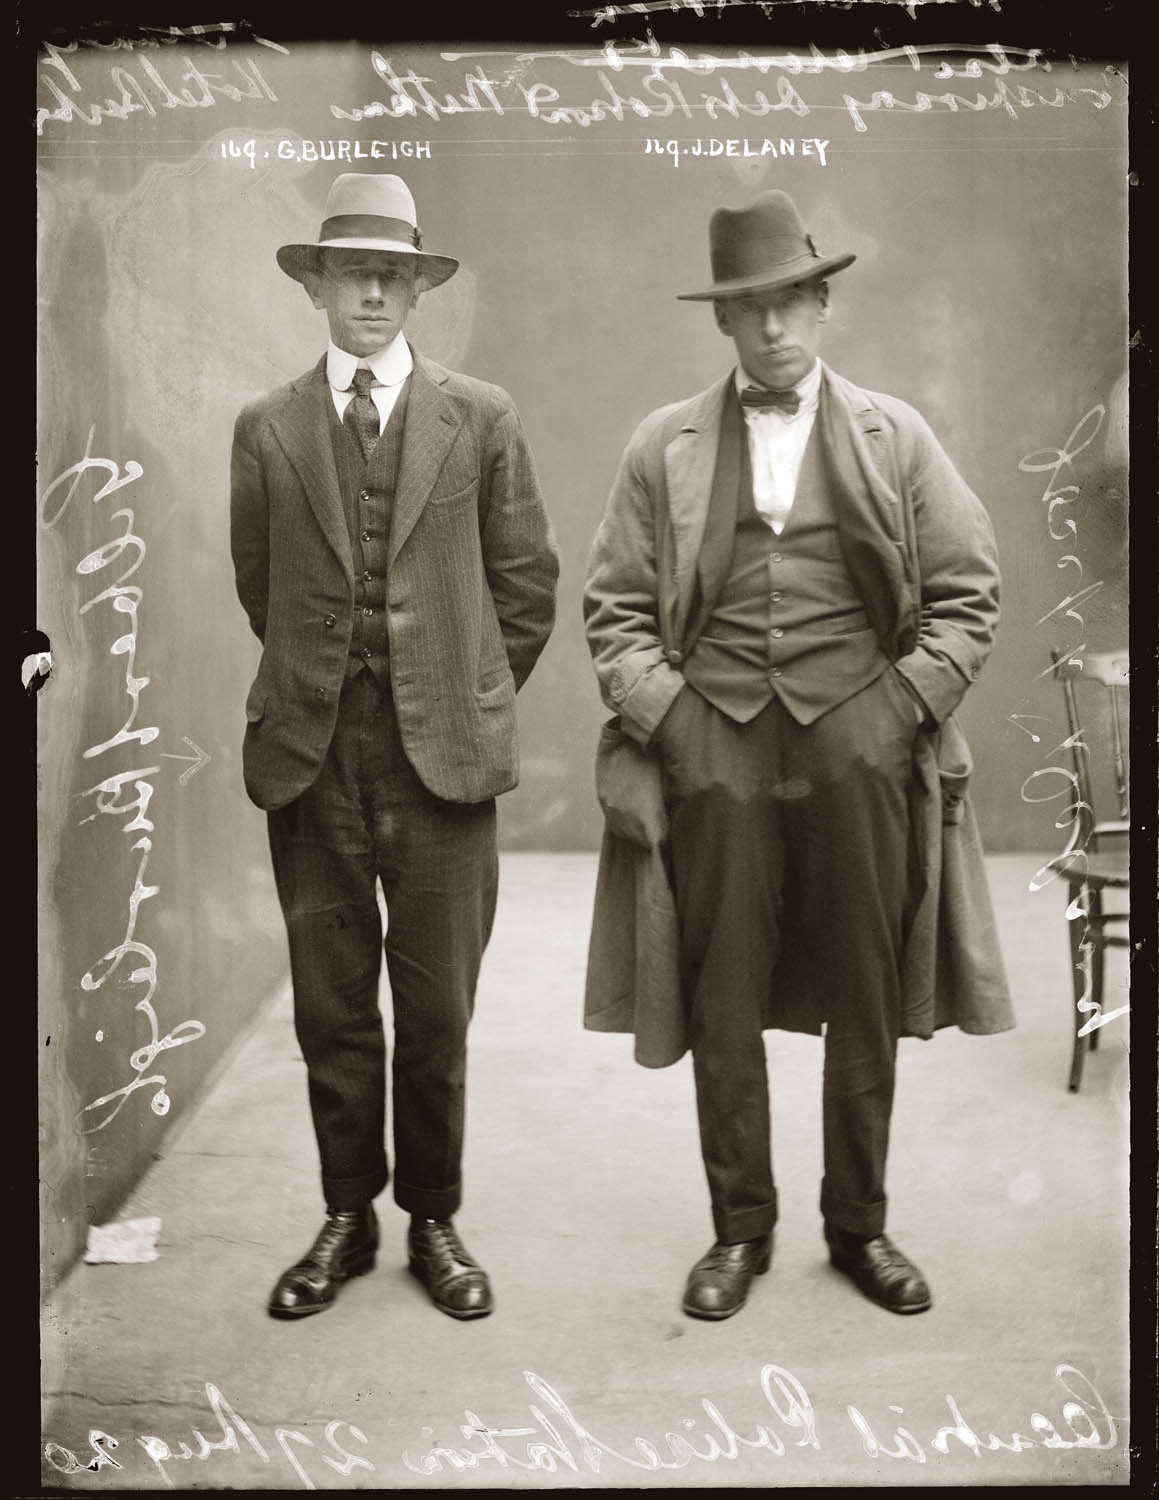 Mug shot of Gilbert Burleigh and Joseph Delaney, 27 August 1920, possibly central Police Station, Sydney.